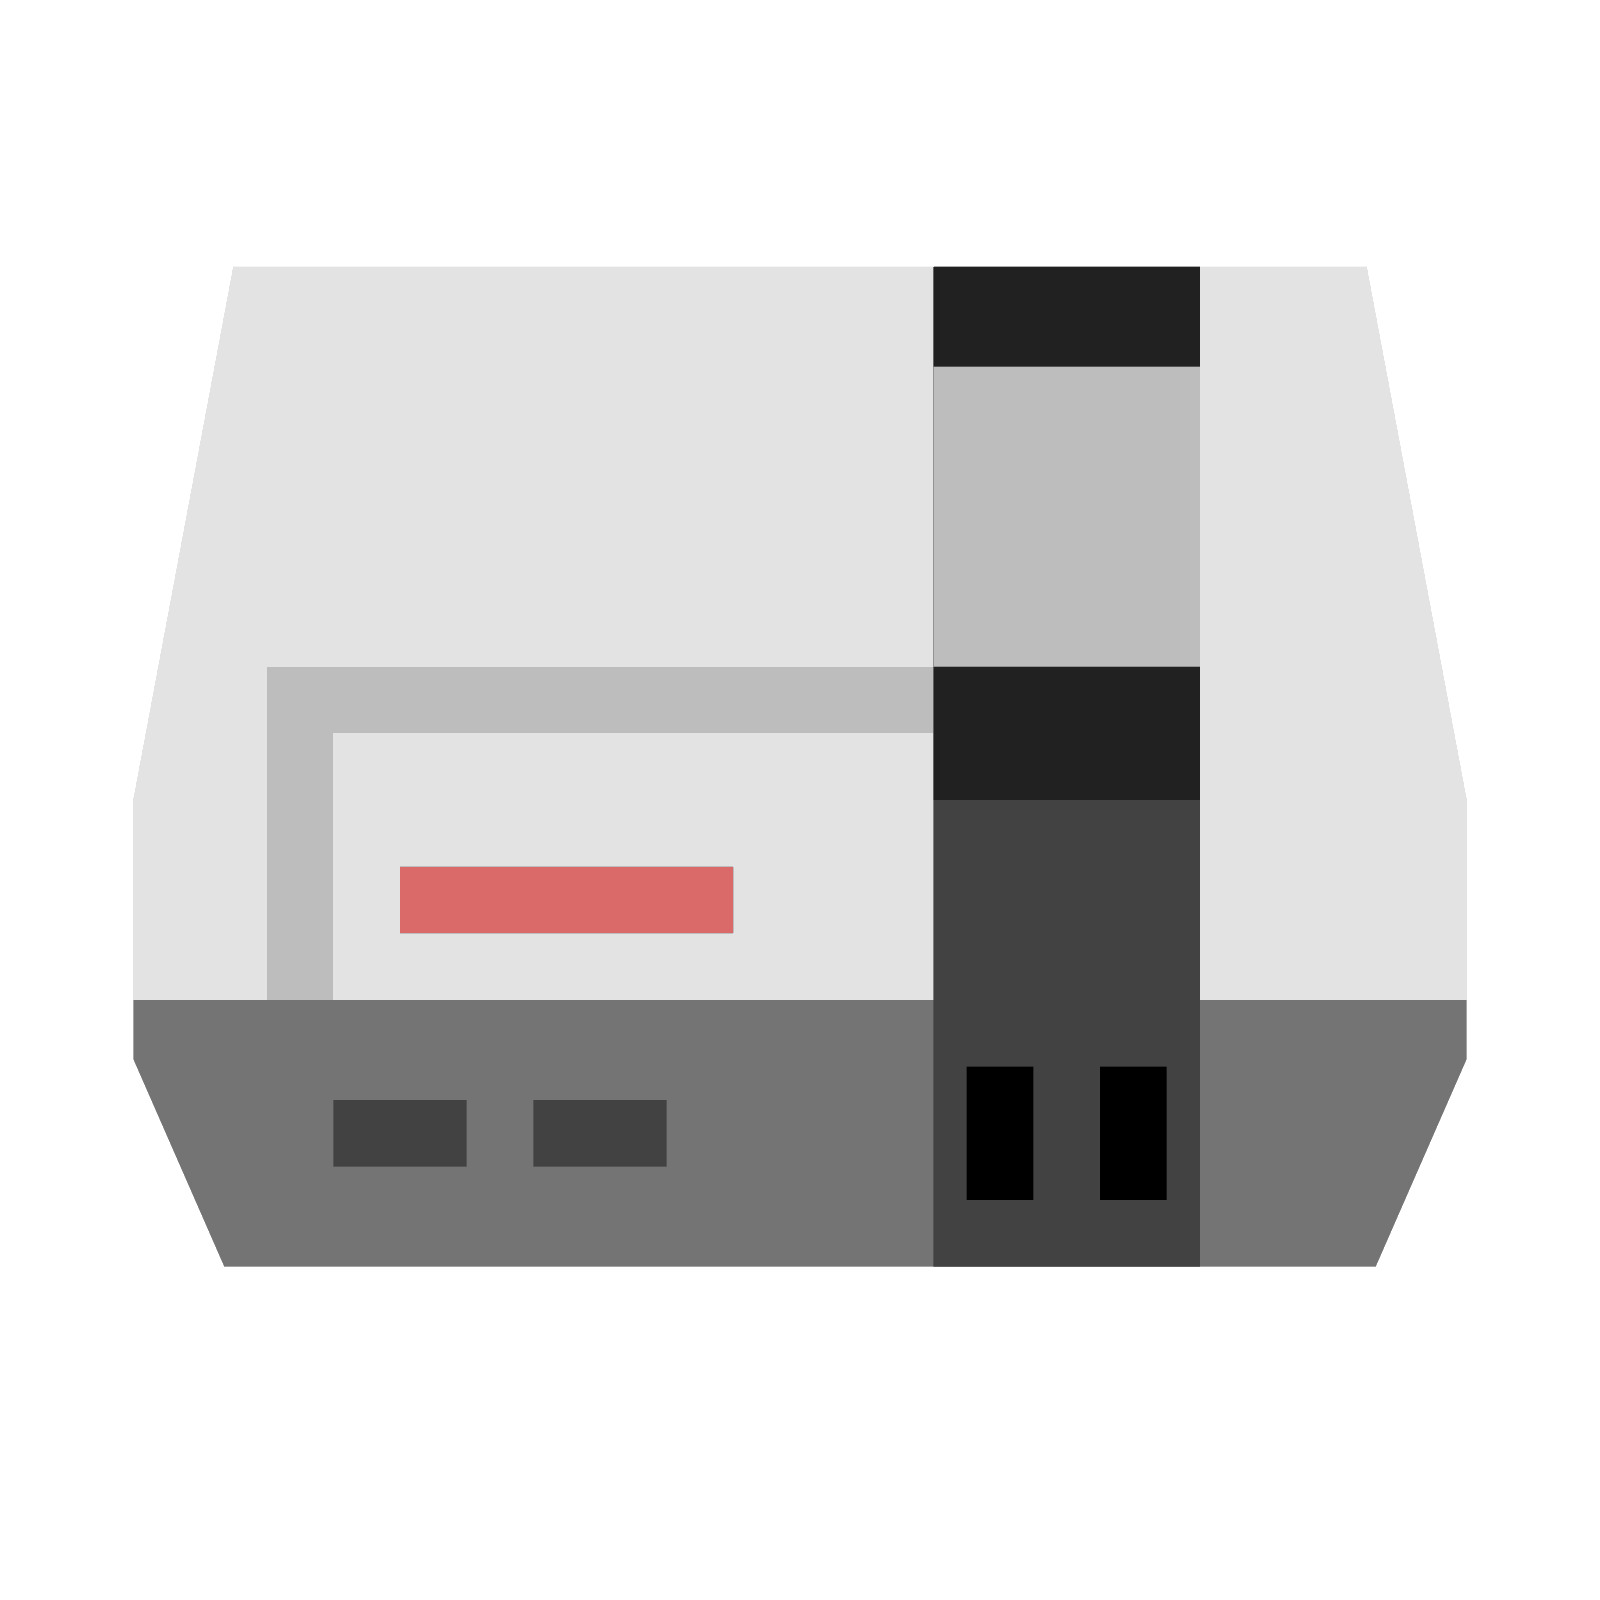 Nintendo entertainment system logo png. Super gamecube computer icons